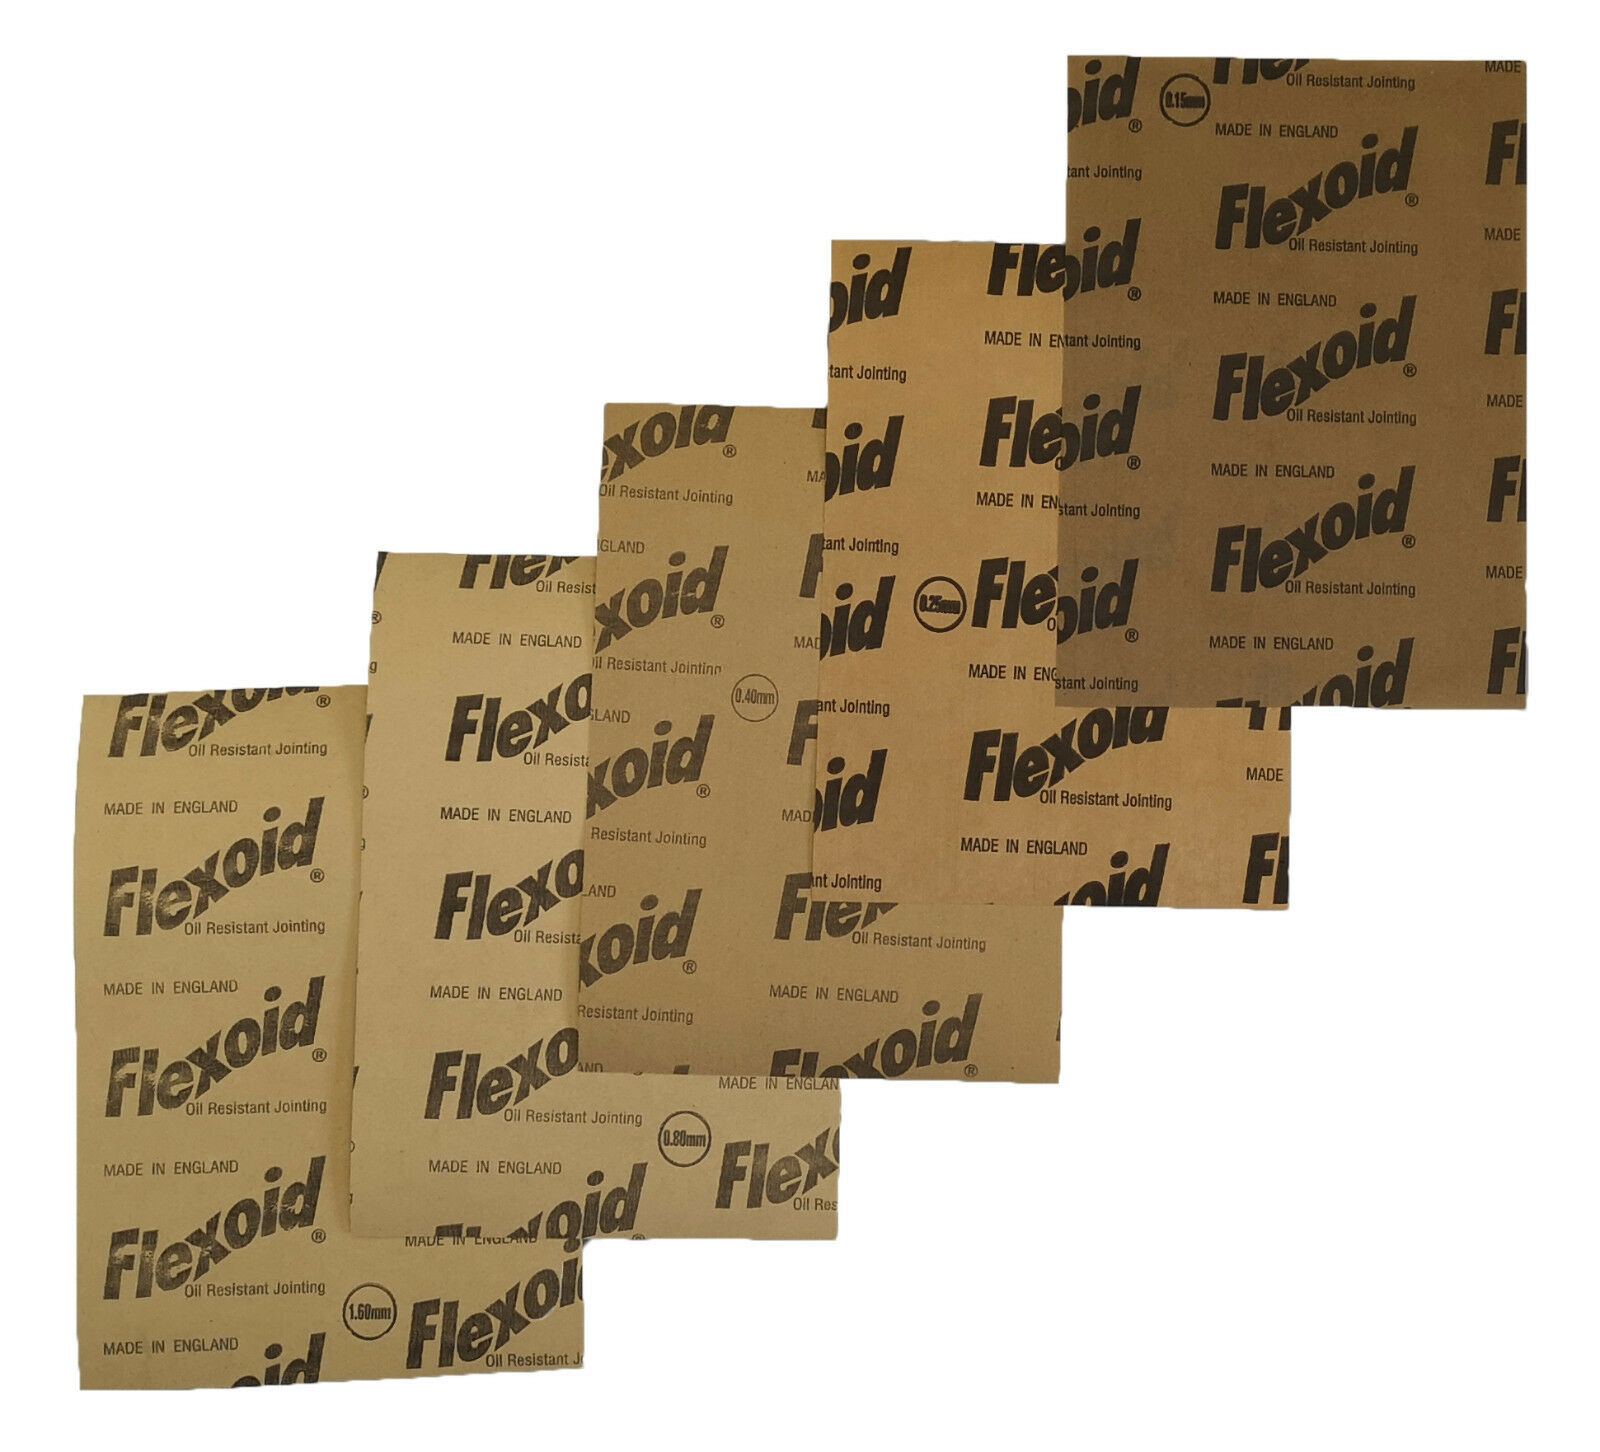 Car Parts - GASKET PAPER MATERIAL - OIL & WATER RESISTANT, FLEXOID BRAND - 5 X A4 SHEETS